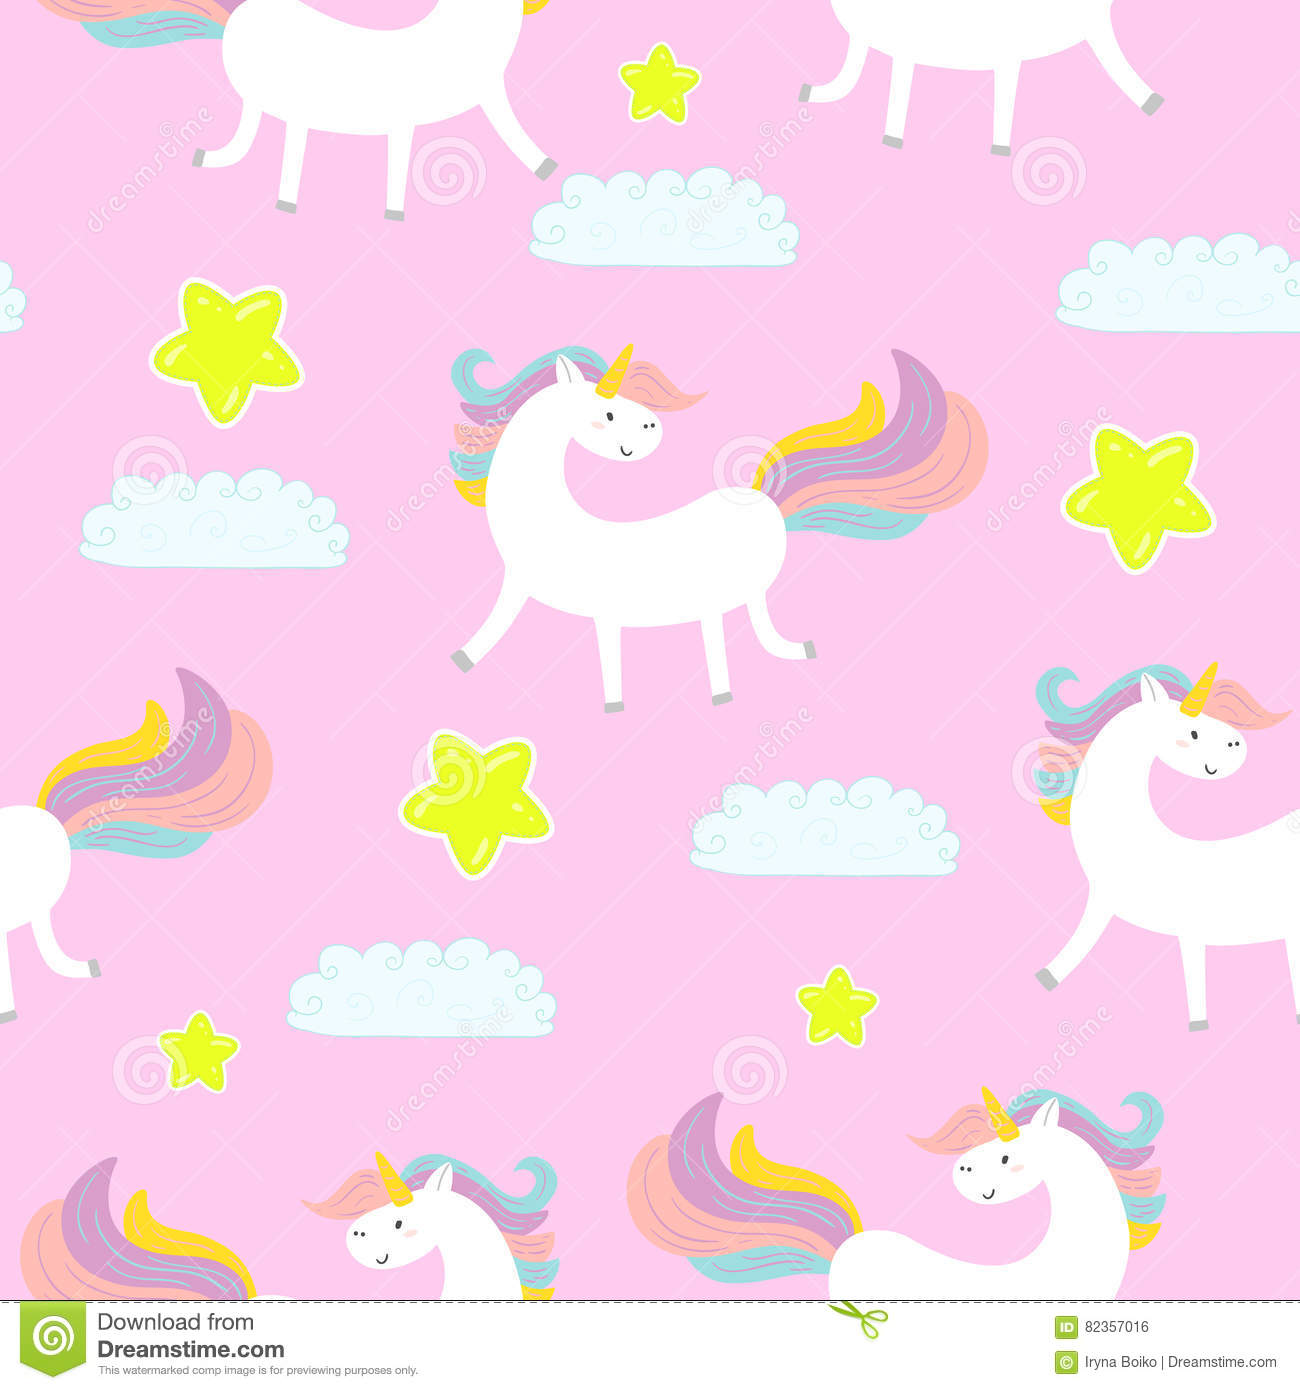 Cute Doodle Wallpaper Hd Cute Unicorn On A Pink Background Vector Pattern Stock